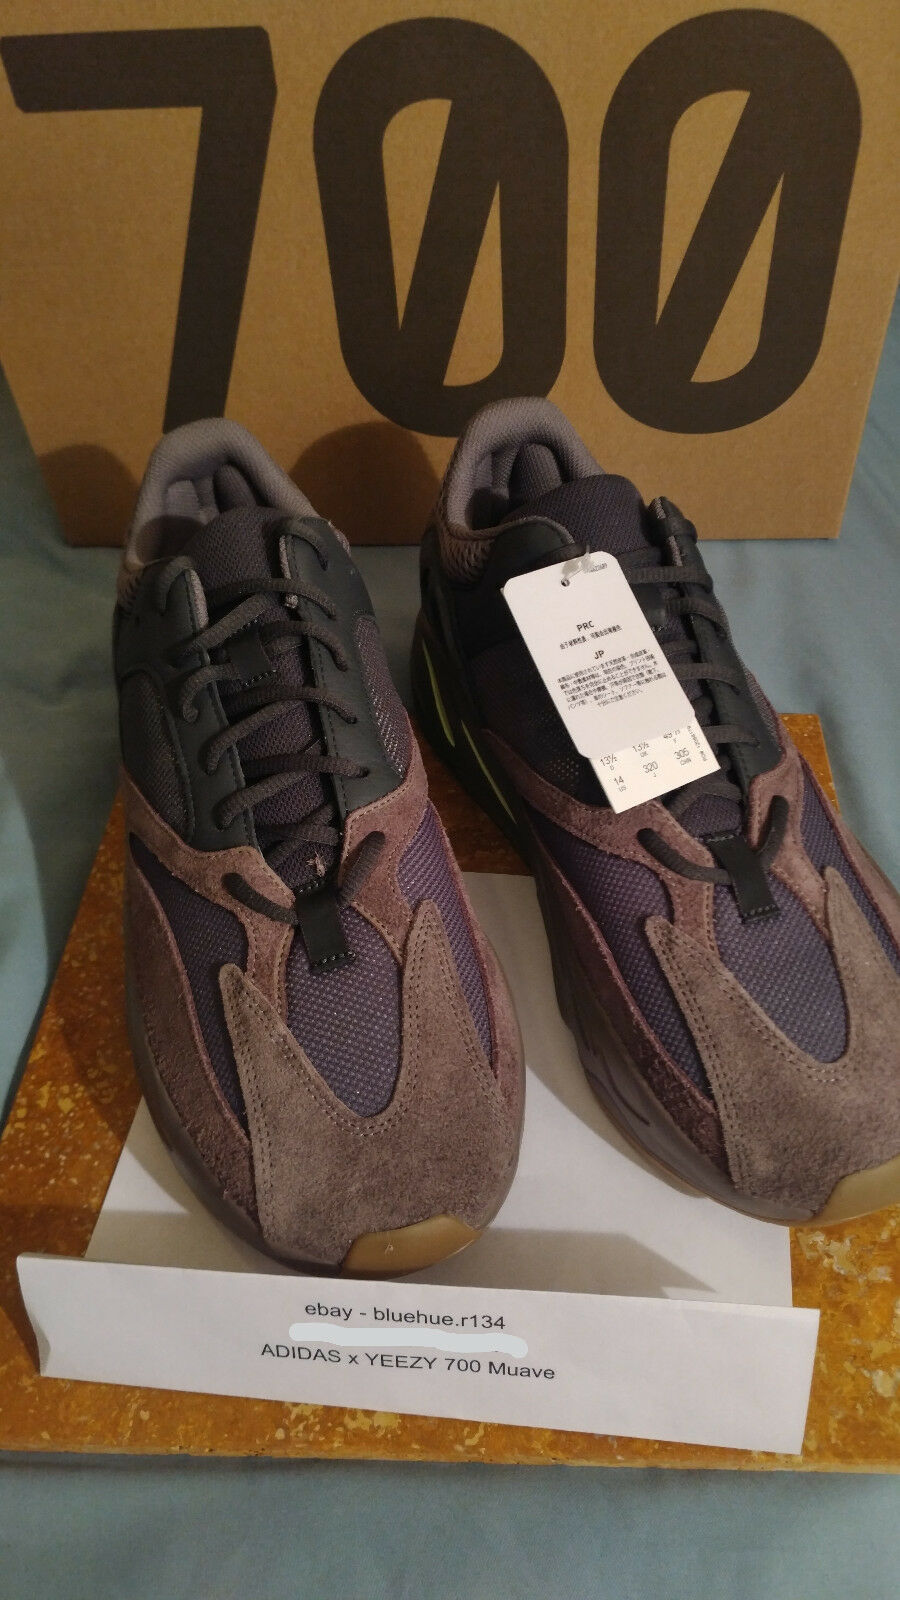 Adidas Yeezy Boost 700 Mauve Size 14 US Mens Item in Hand